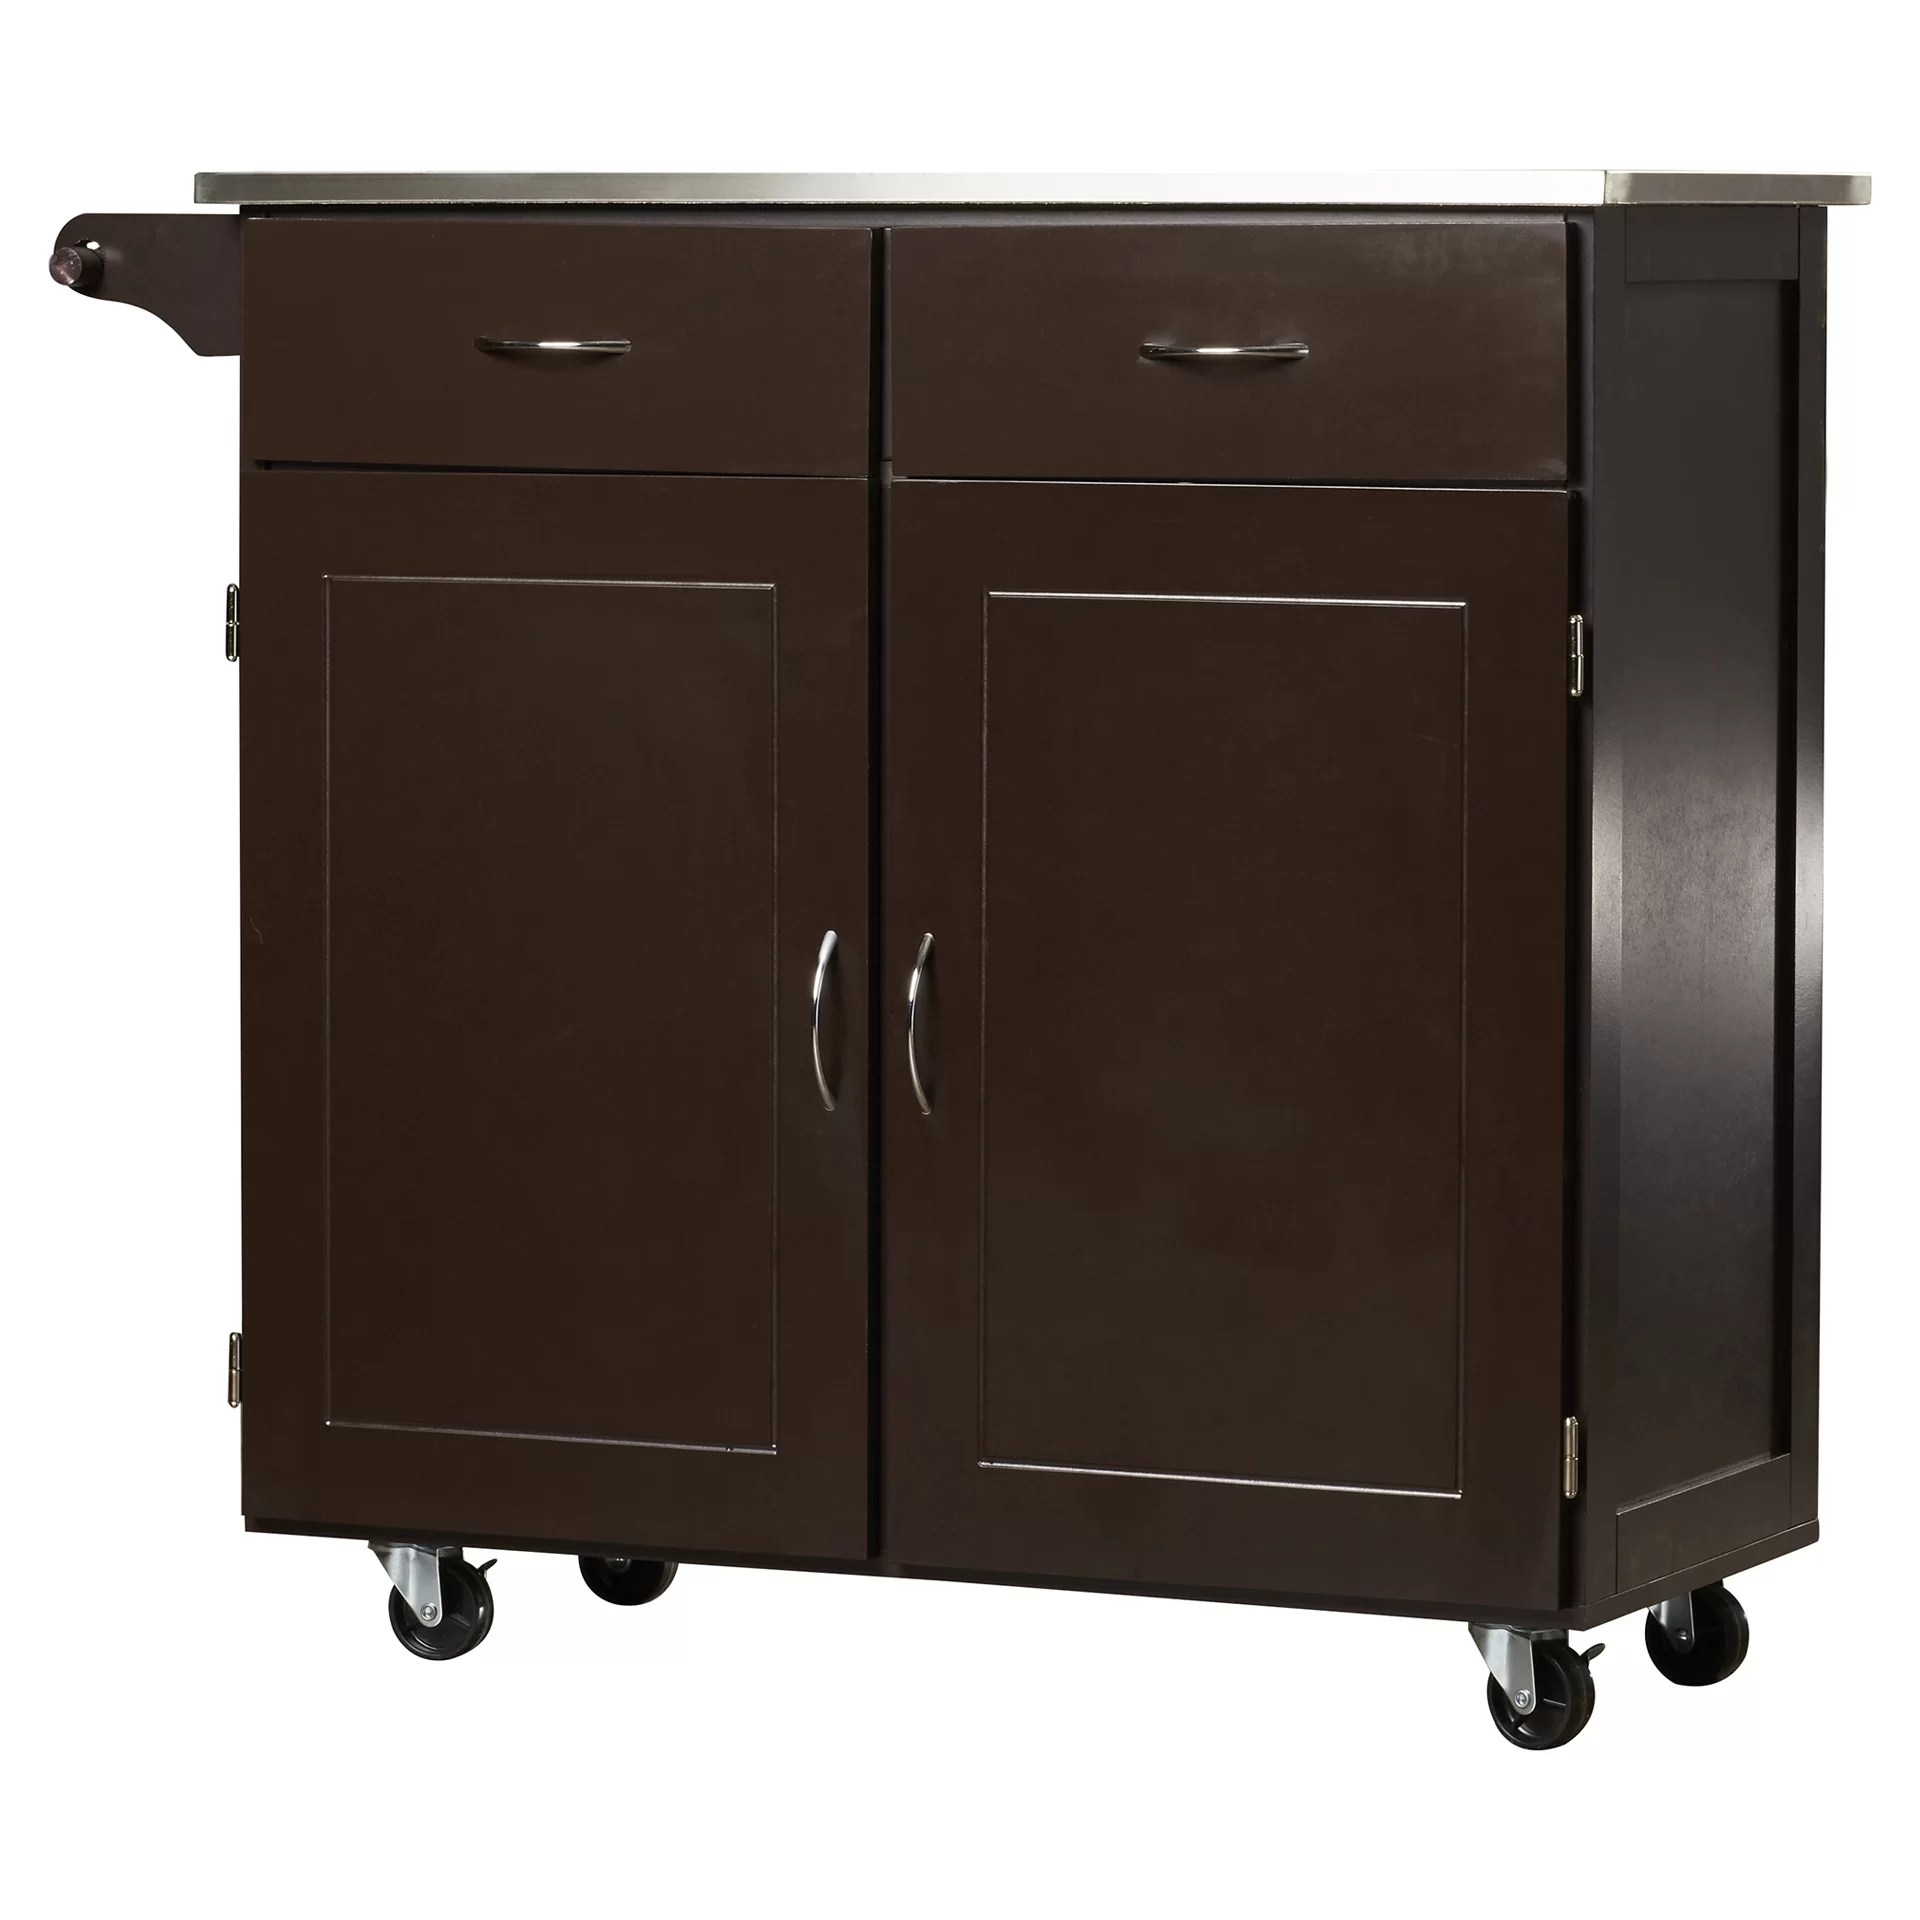 stainless steel kitchen cart cabinets portland brayden studio dayville large with